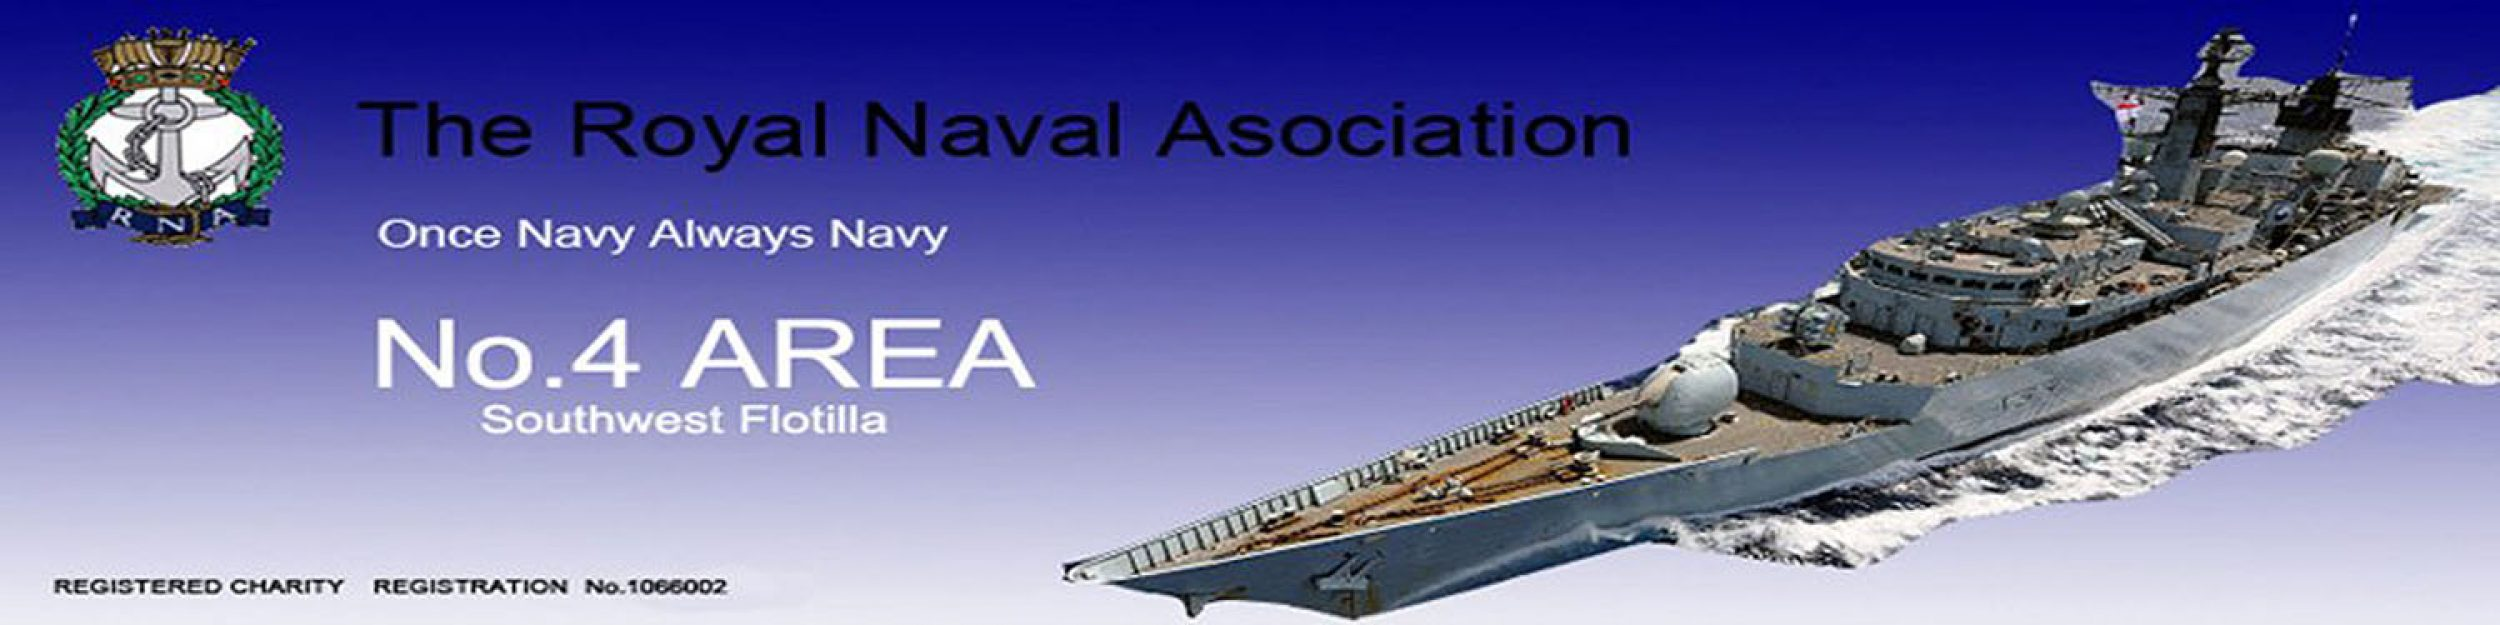 No4 Area Royal Naval Association